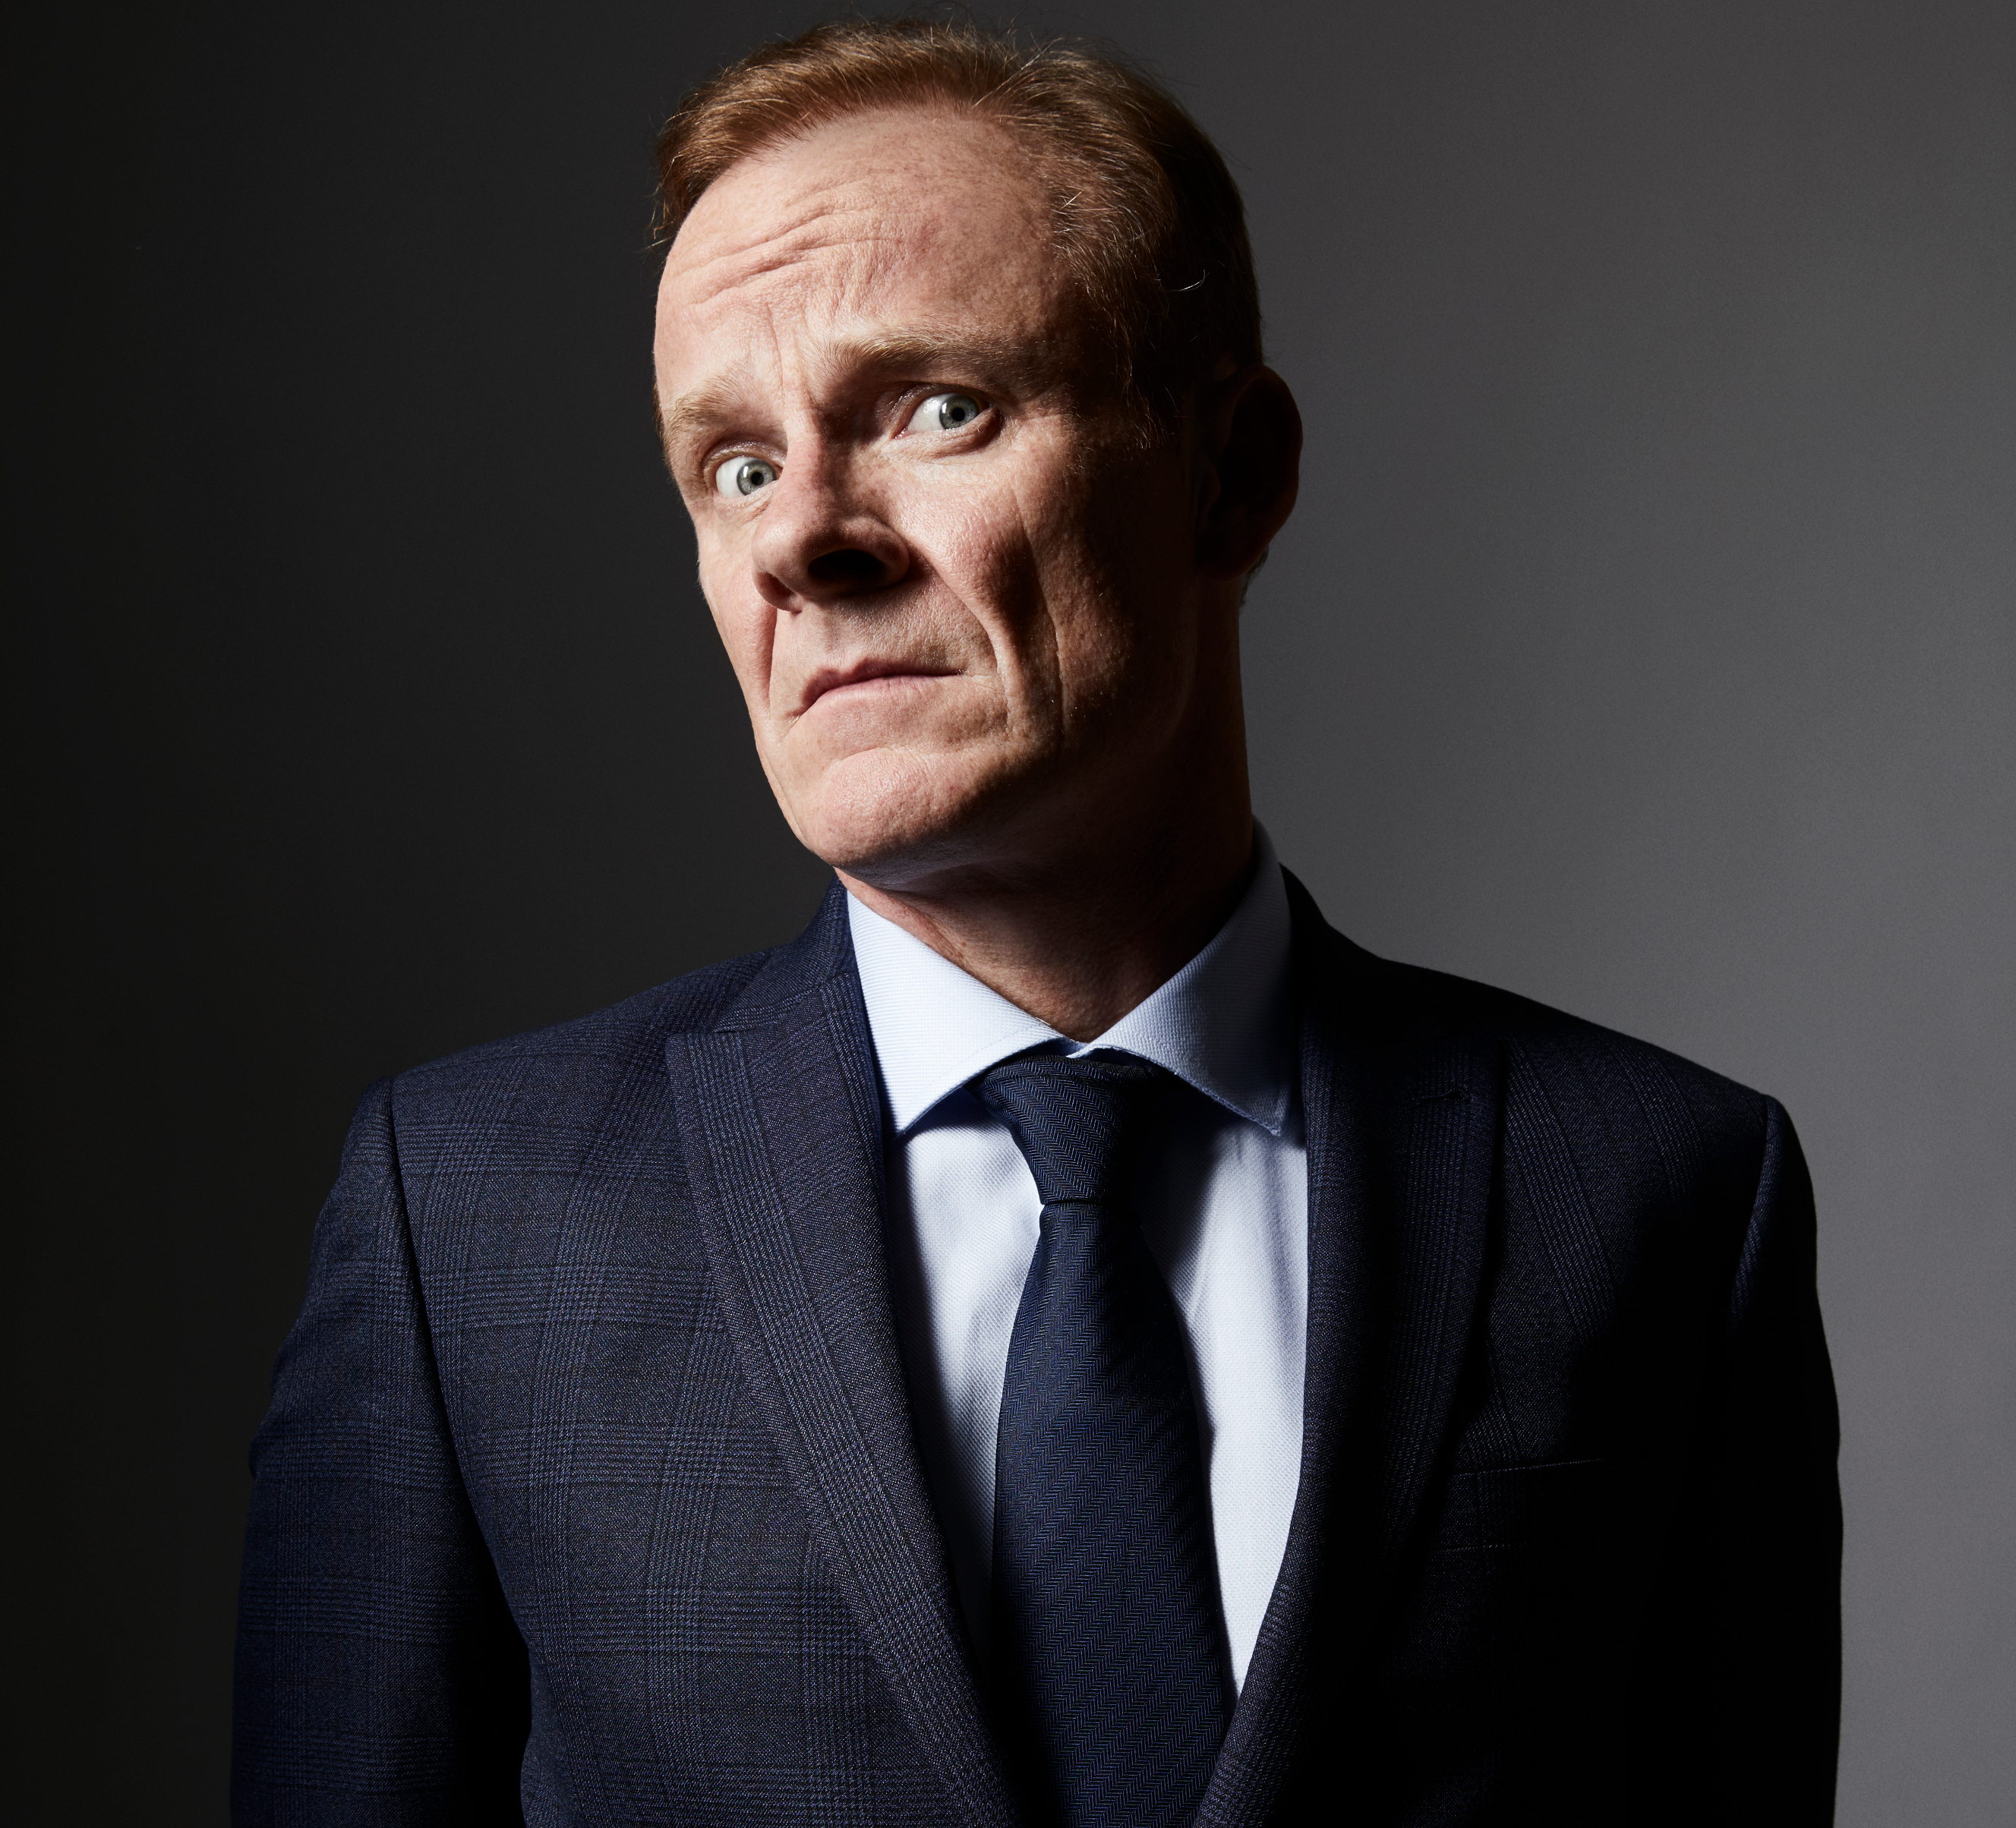 Alistair Petrie plays Mr. Groff aka Mr. G, the headmaster of Moordale, the school where 'Sex Education' is set. (Photographer: David Reiss)